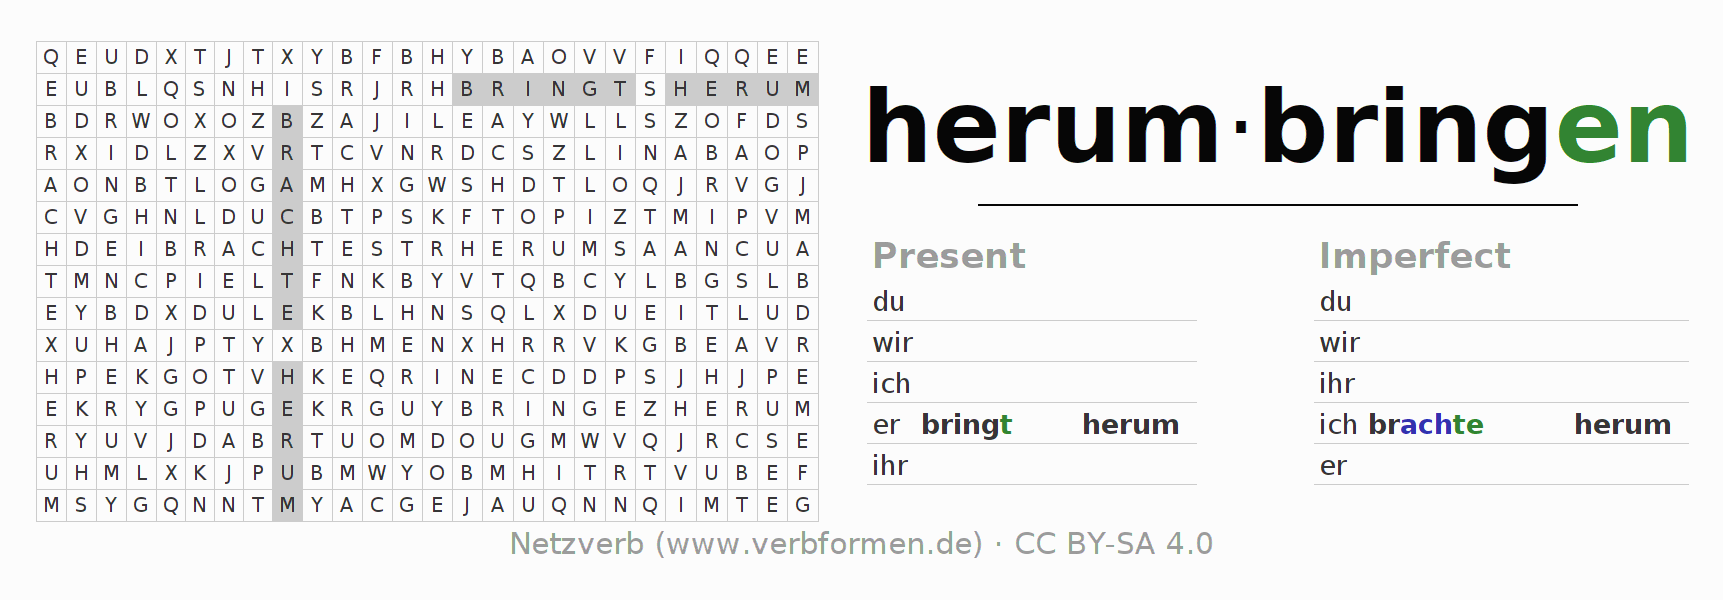 Word search puzzle for the conjugation of the verb herumbringen